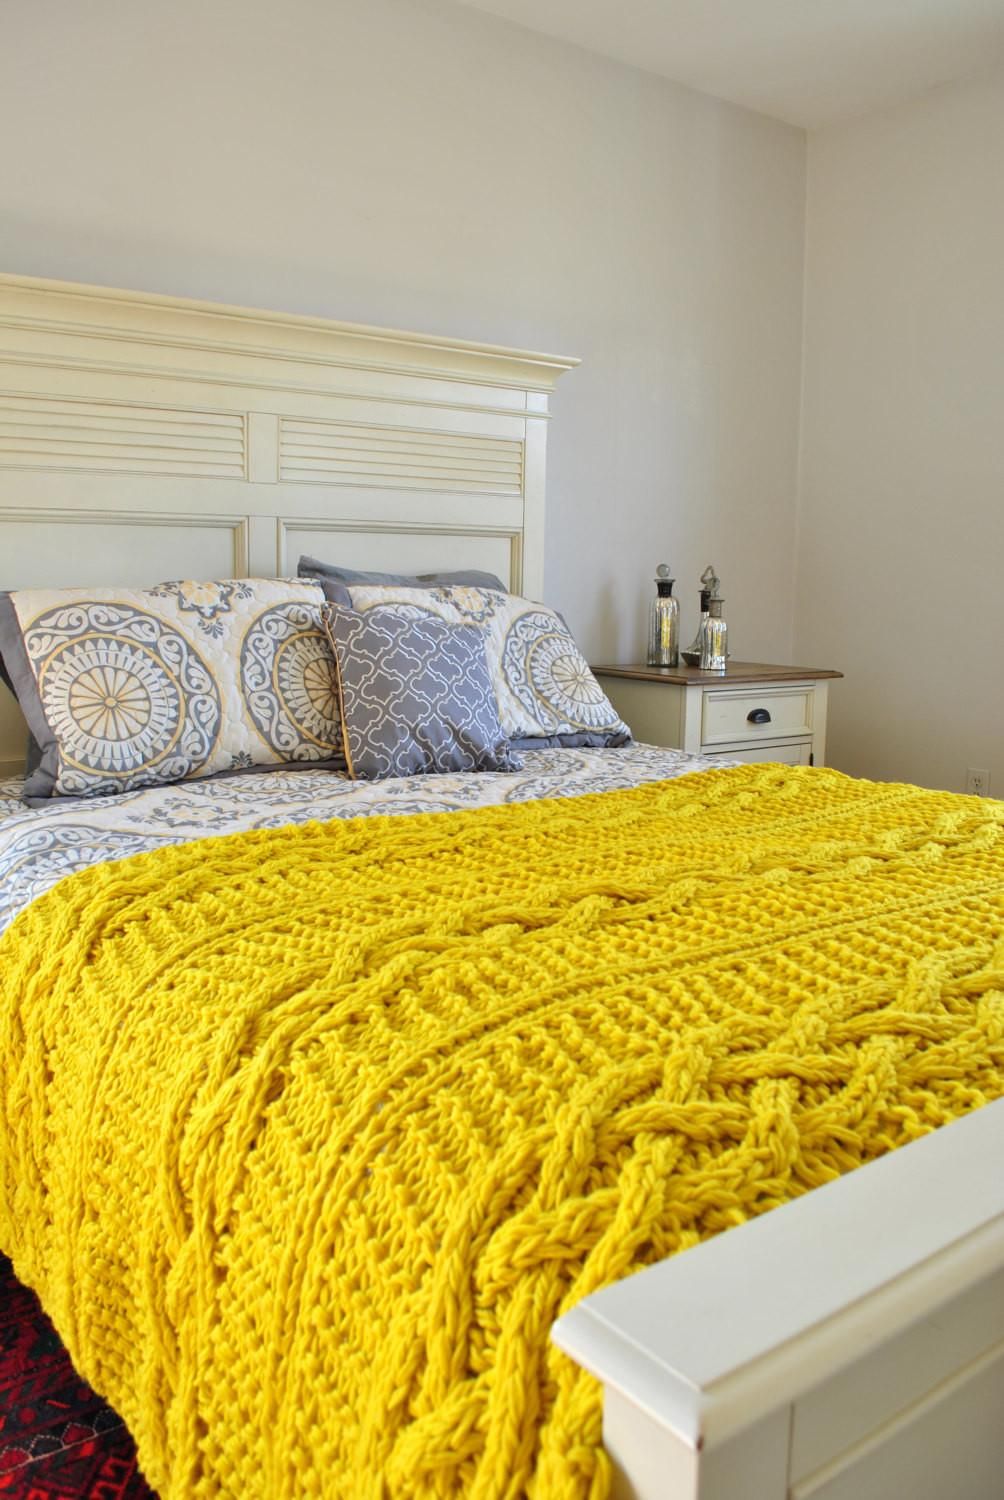 Chunky Cable Knit Throw Blanket Yellow Campkitschyknits